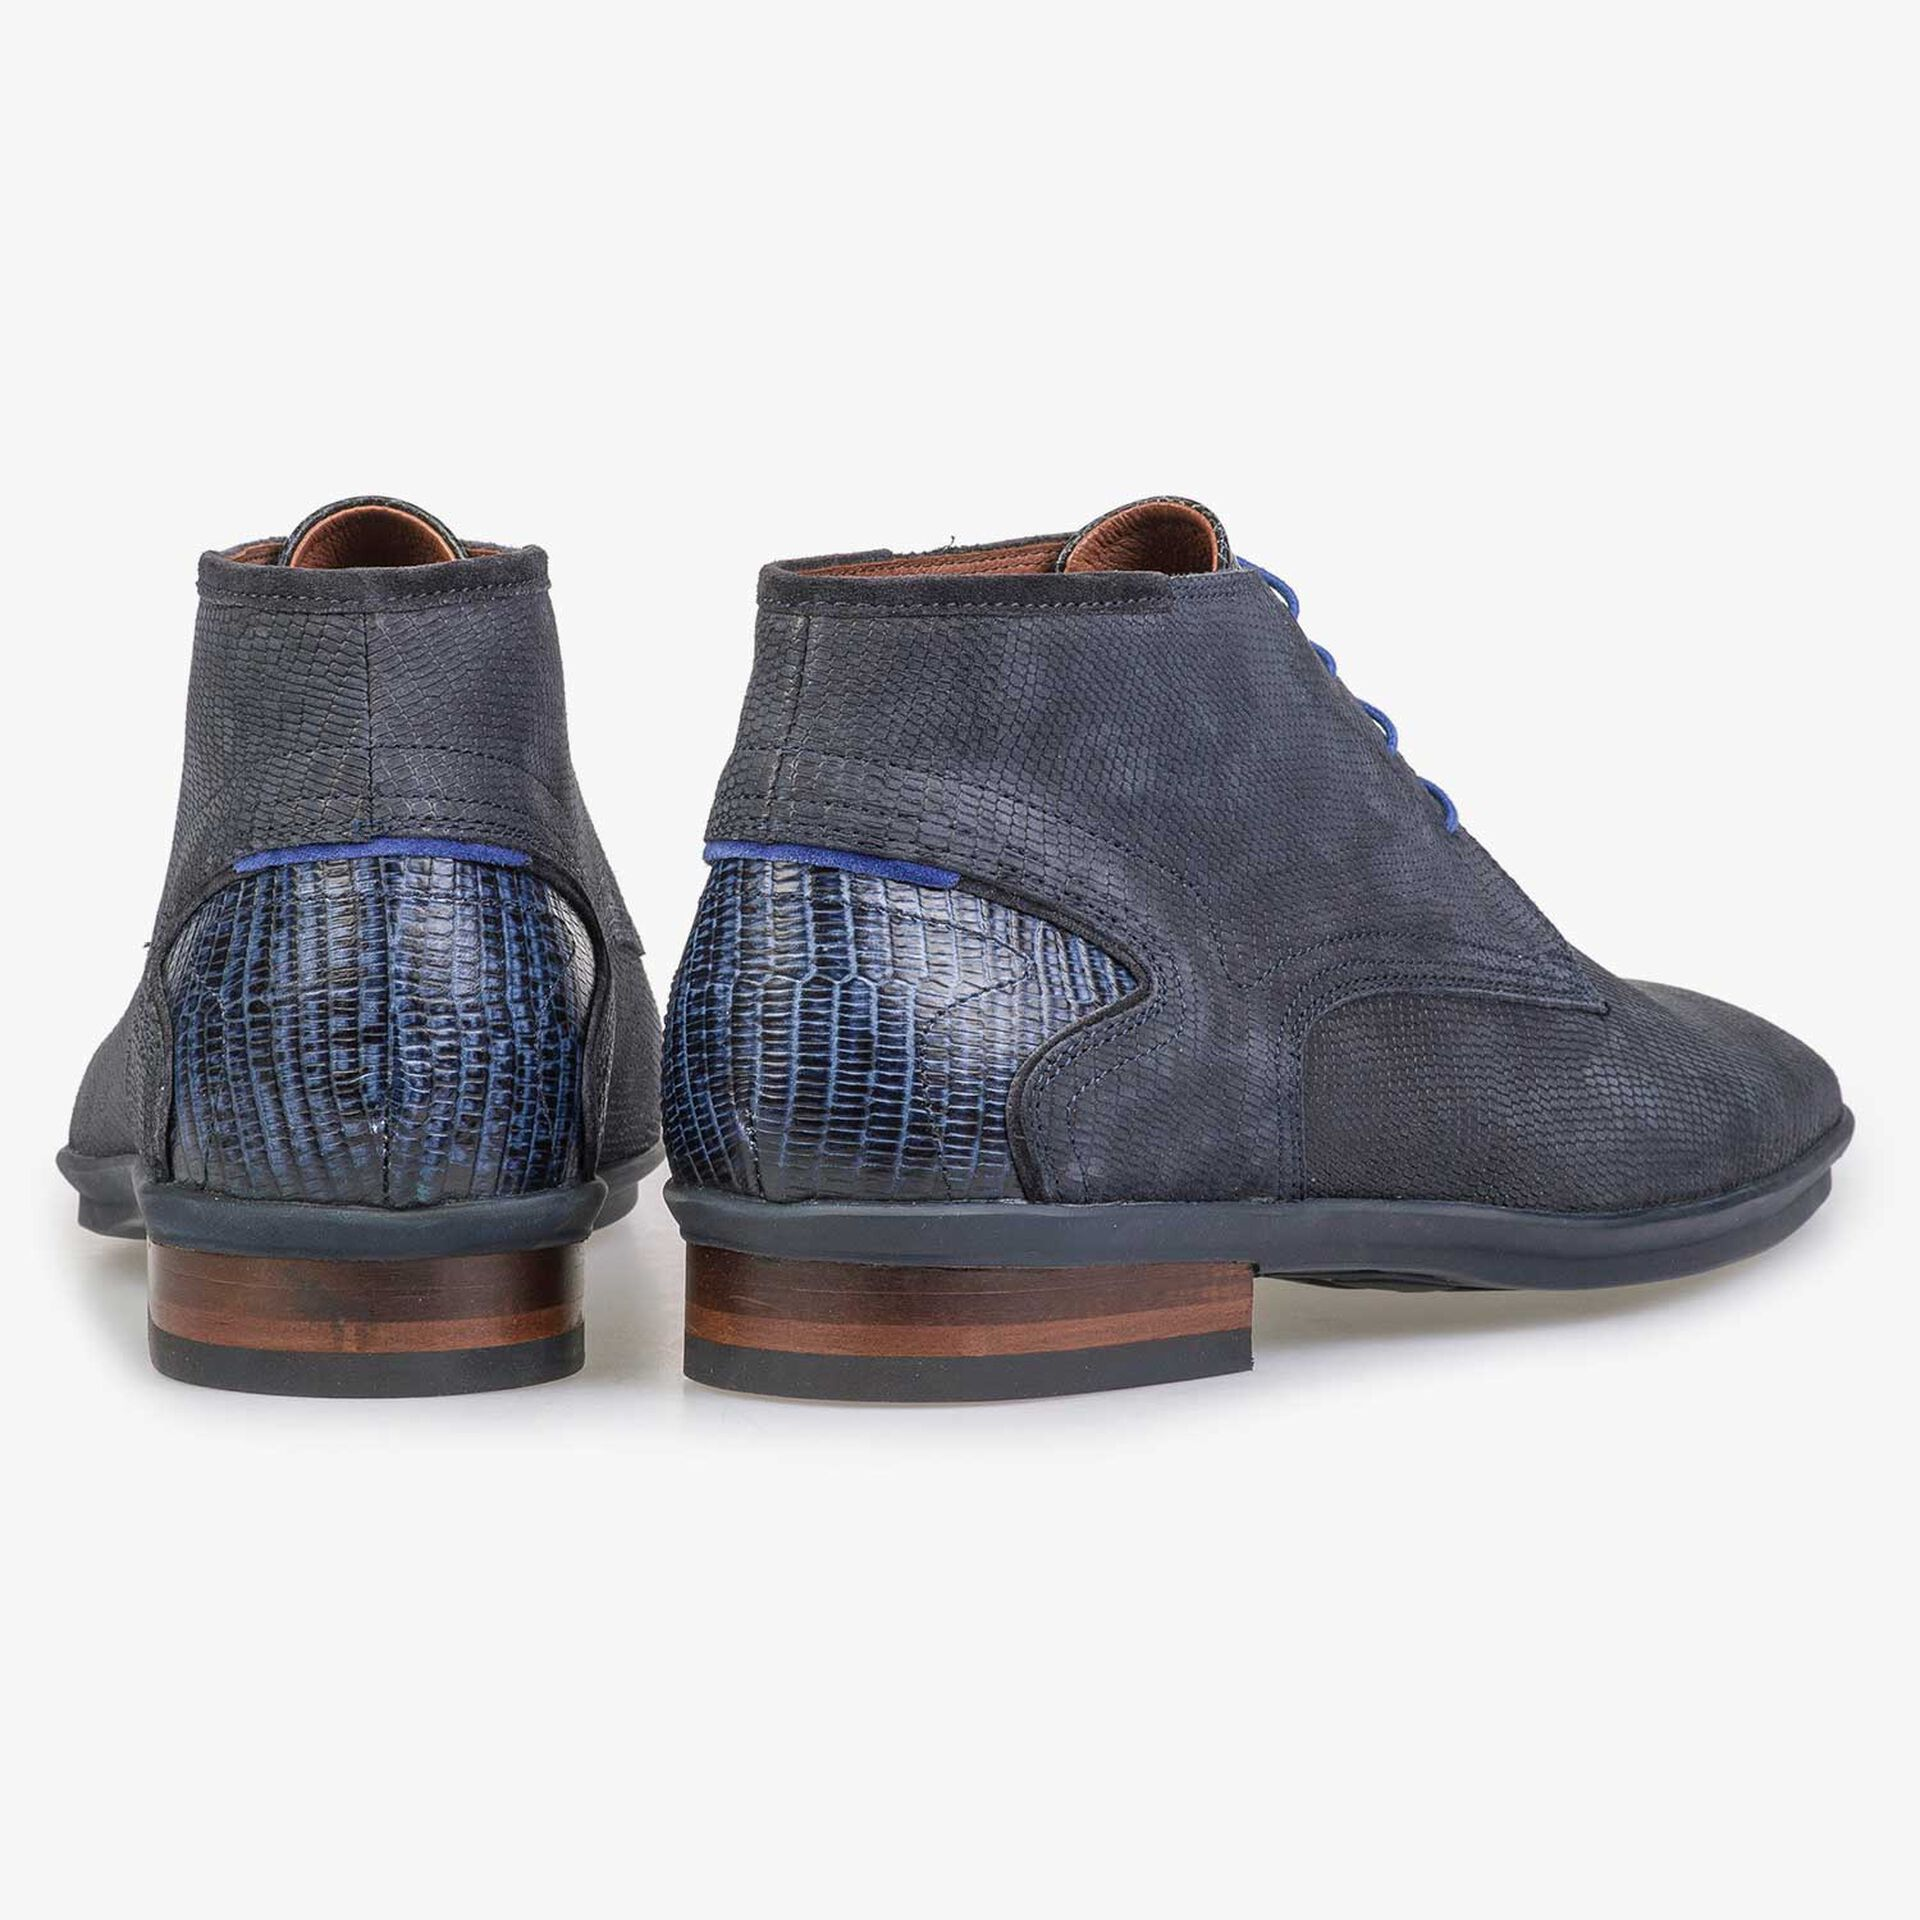 Blue nubuck leather lace shoe with structural print